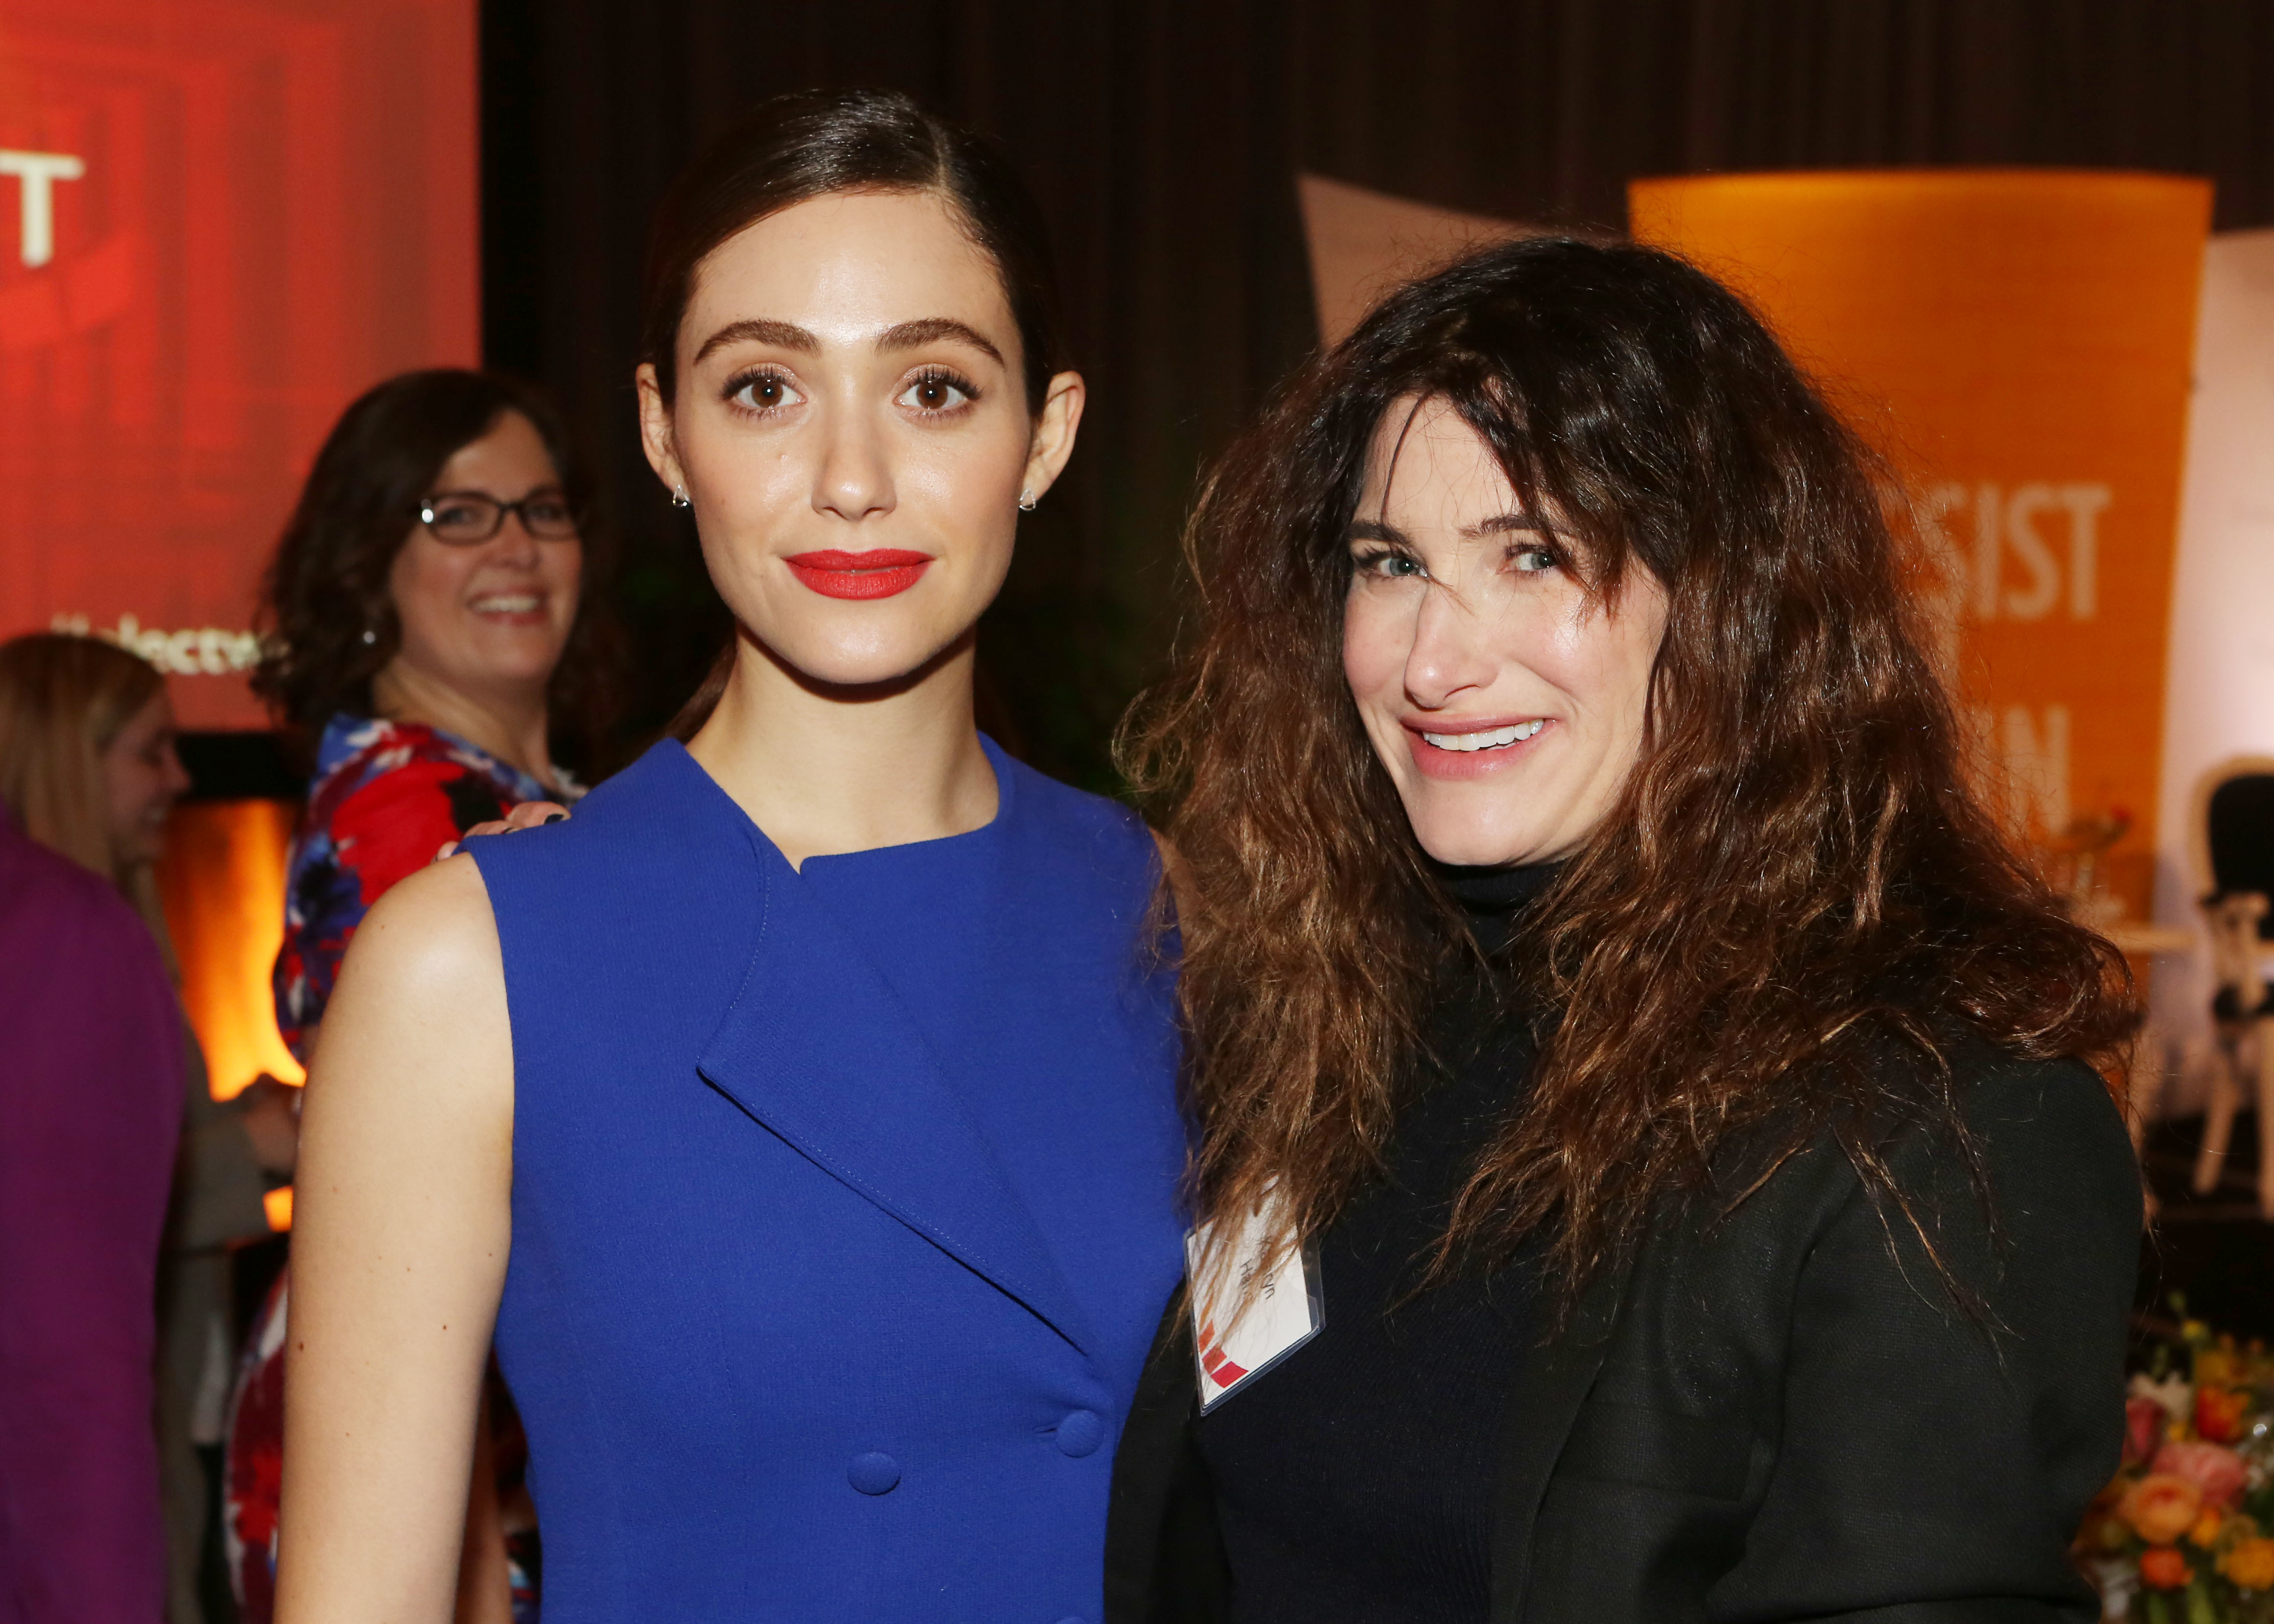 Emmy Rossum and Kathryn Hahn attend the Emily's List Run. Resist. Win event in Los Angeles on Feb. 27, 2018.